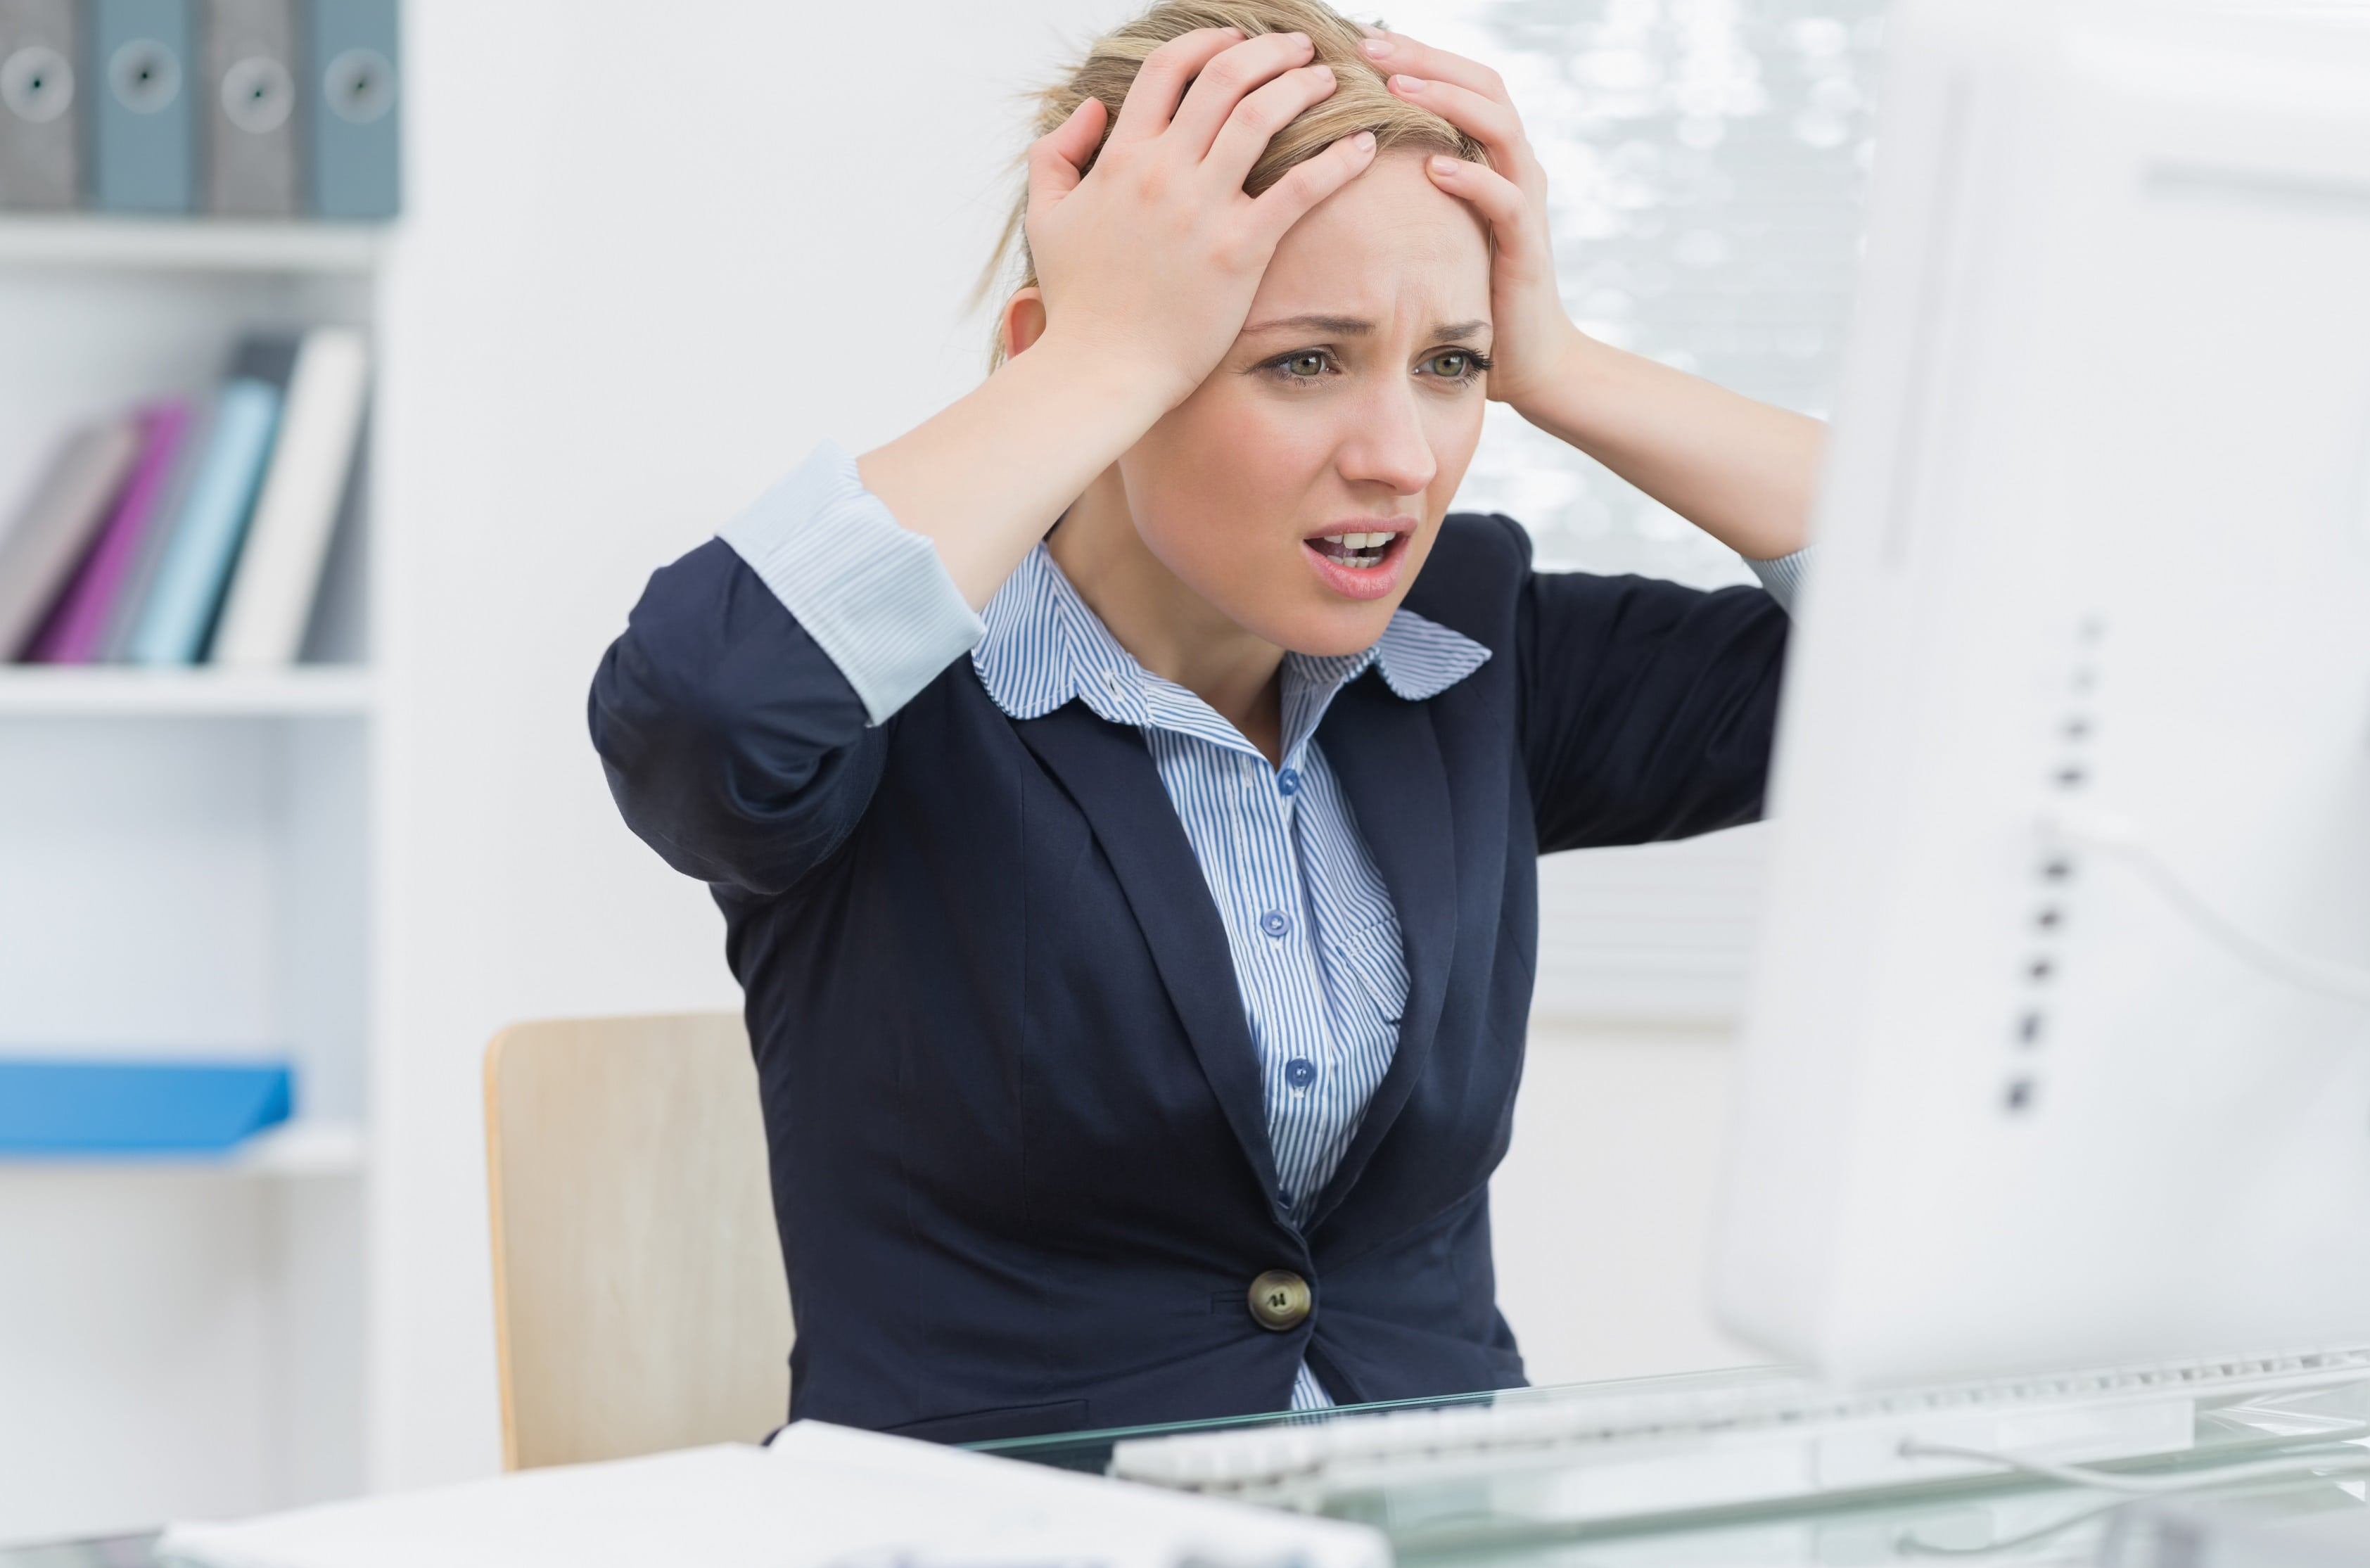 Frustrated Person - Xconomy-6241